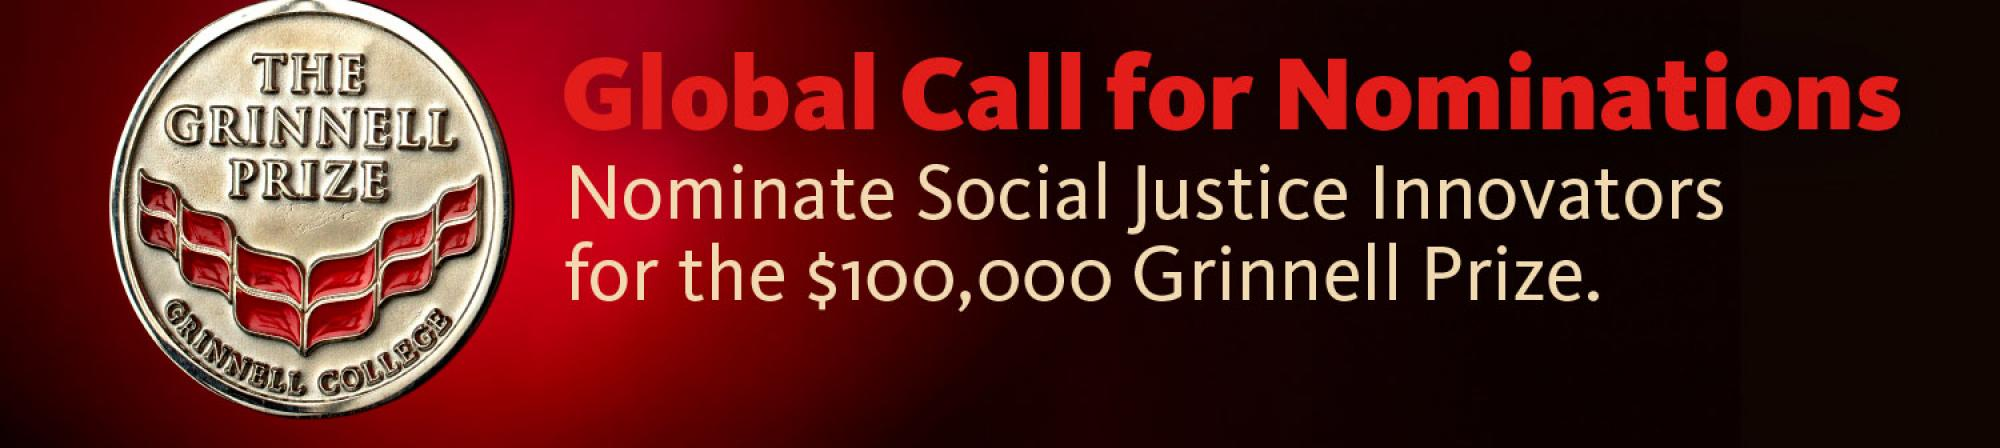 Grinnell Prize medal and text: Global Call for Nominations - Nominate Social Justice Innovators for the $100,000 Grinnell Prize